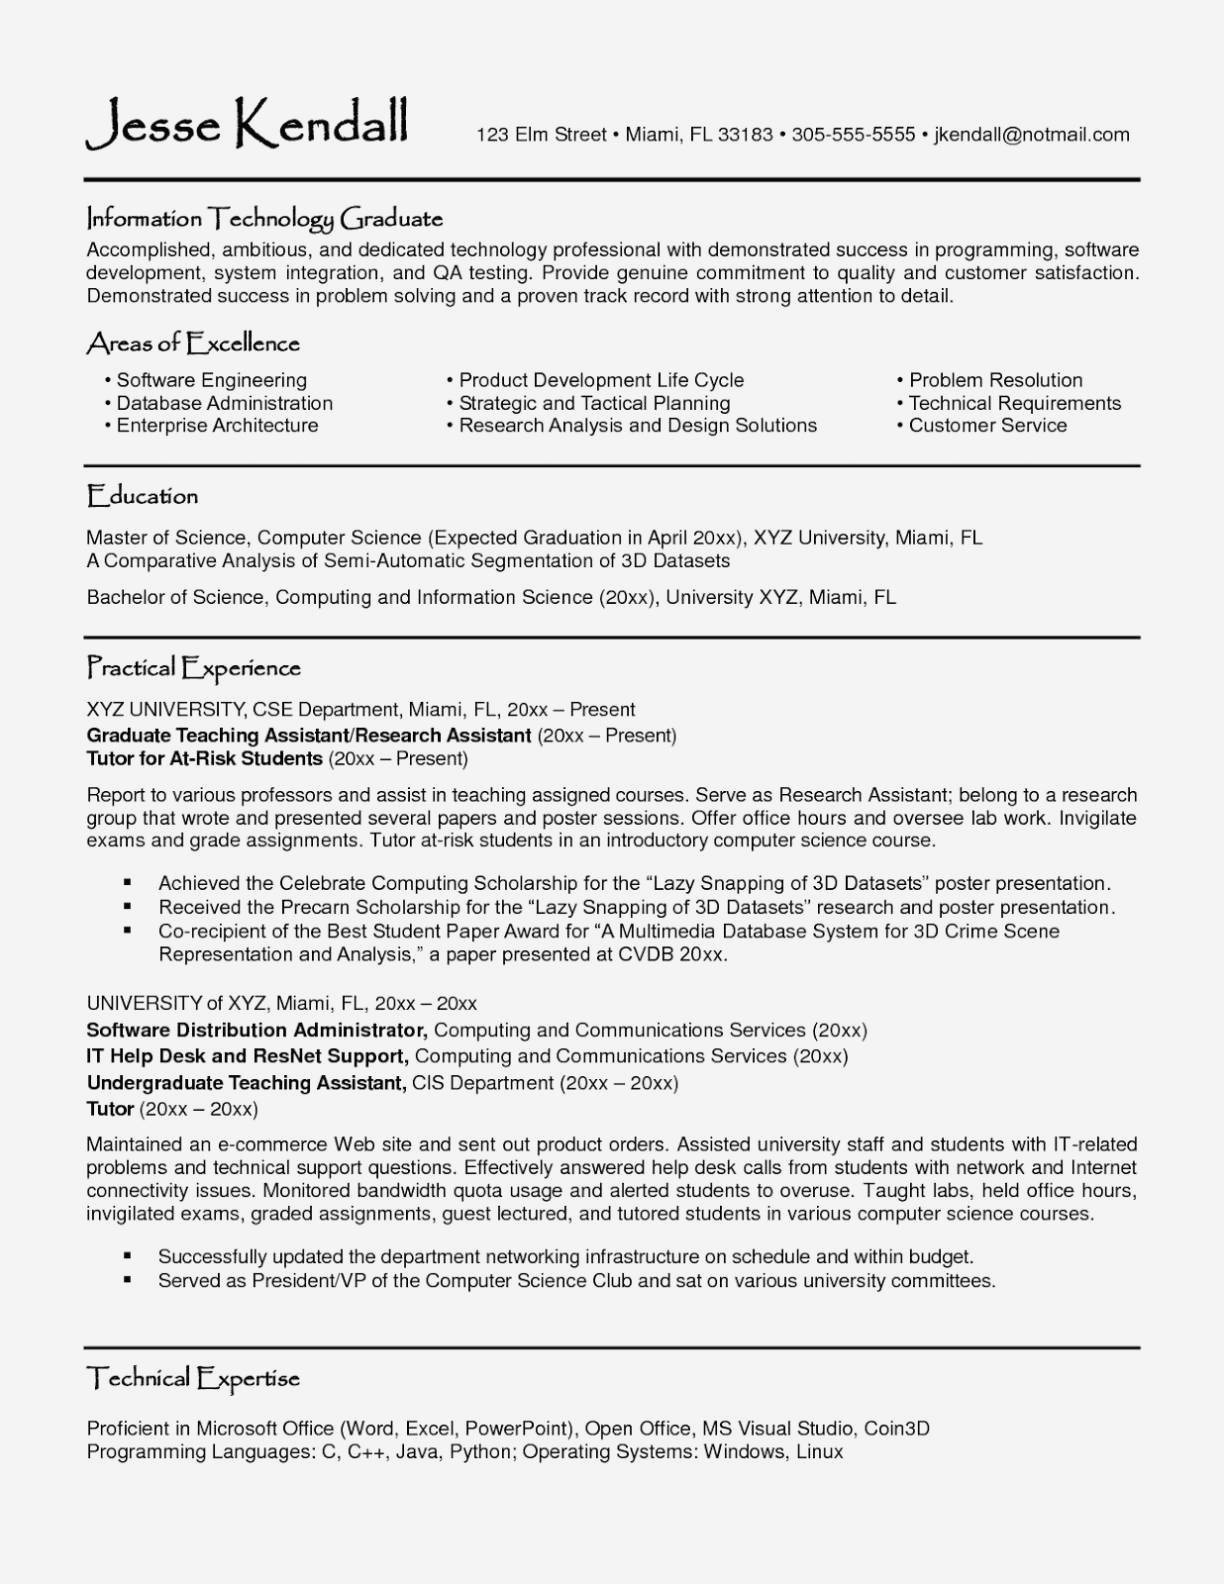 Scrum Master Resume Example - Scrum Master Resume Sample New Sample Scrum Master Resume Concept